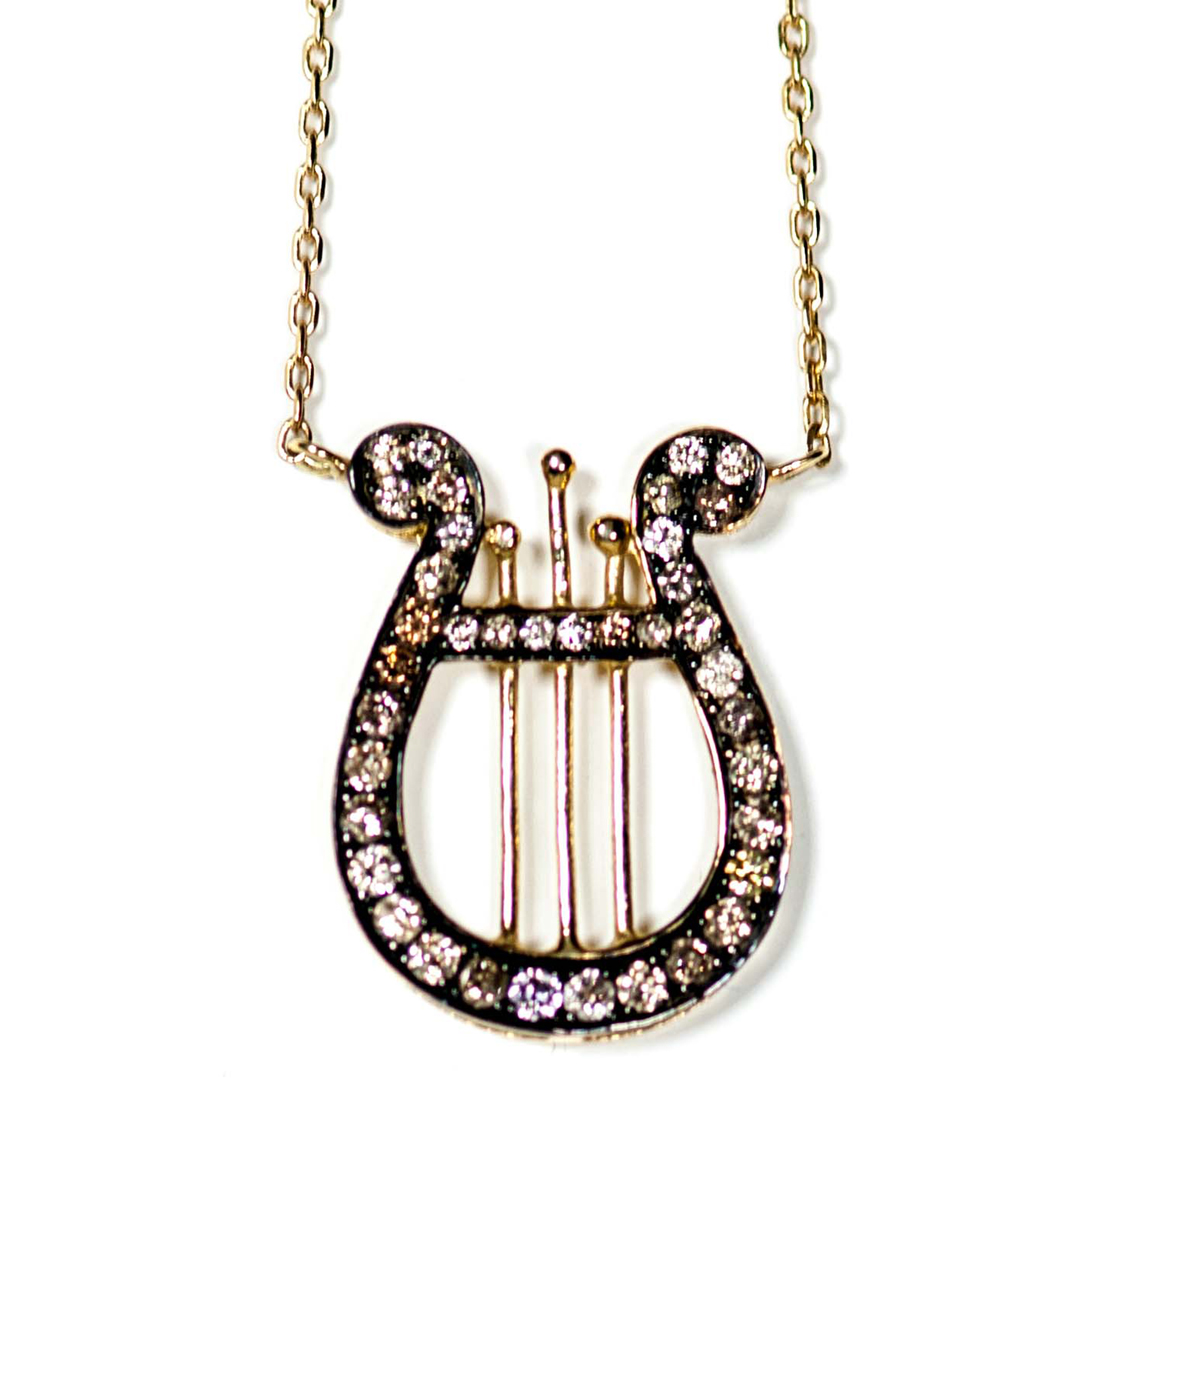 Lyre Necklace